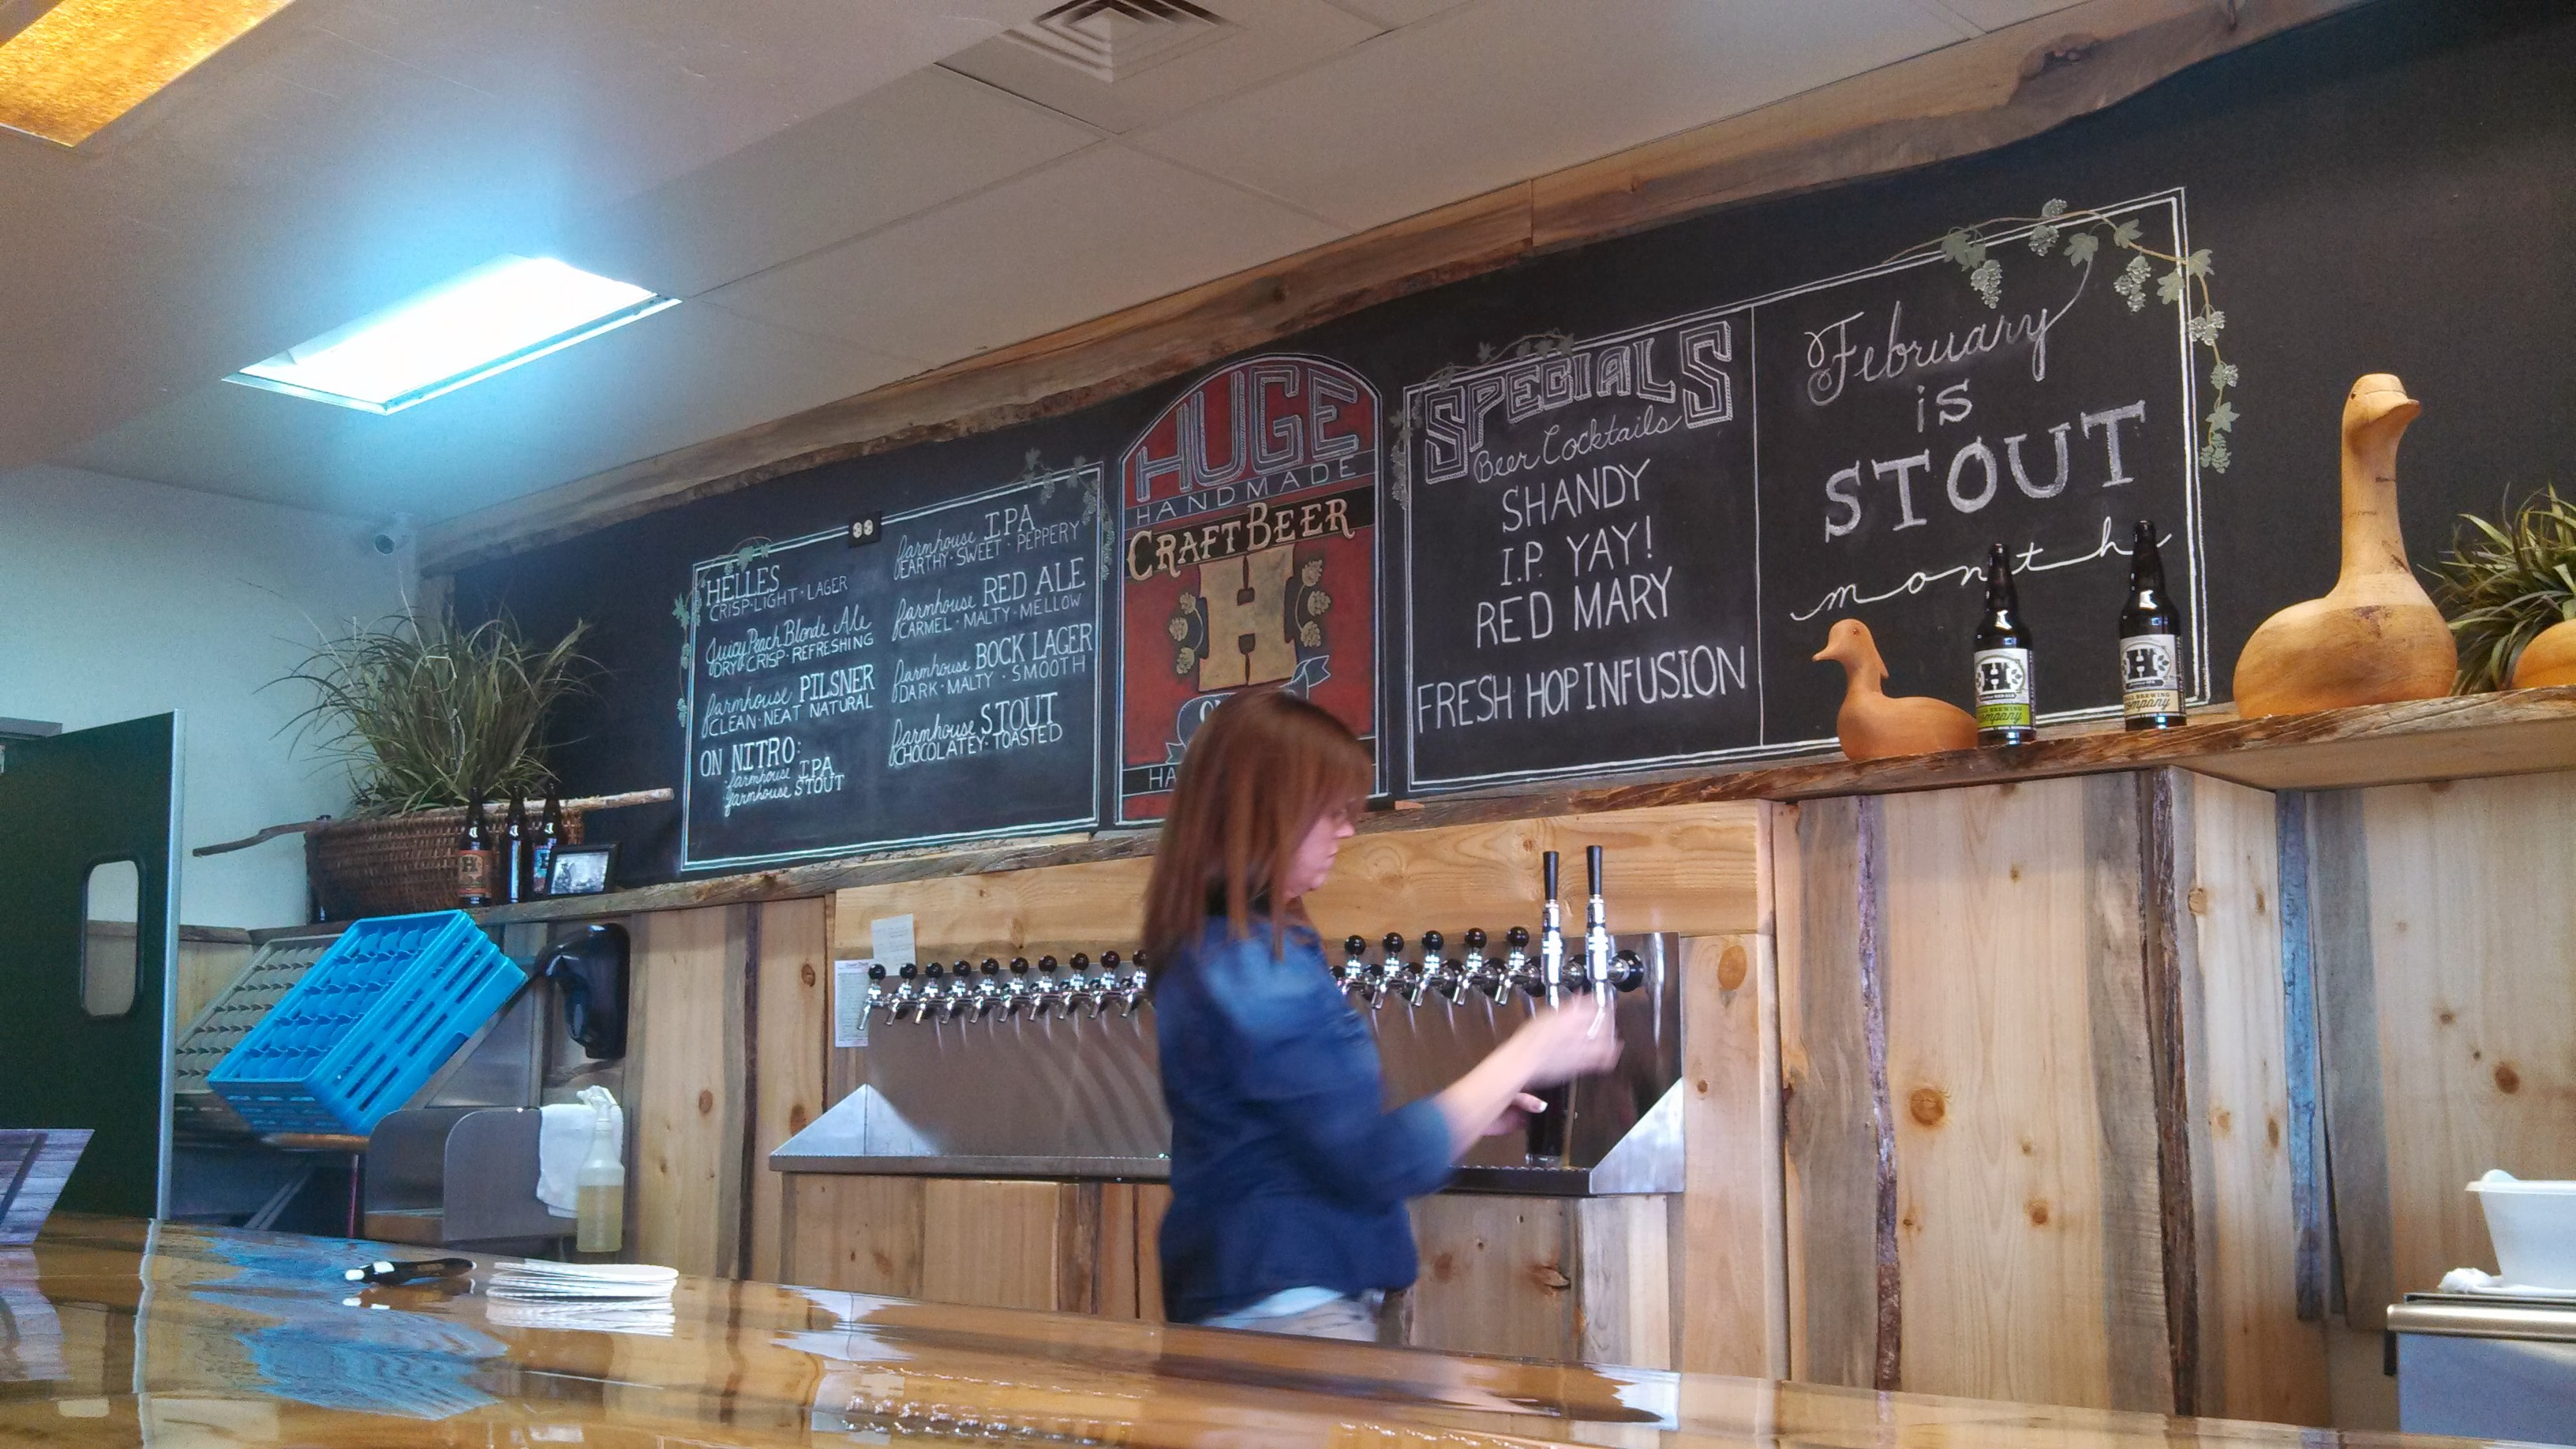 Corridor Brewery Amp Provisions Chicago Ill Beer Menu - HD3264×1836